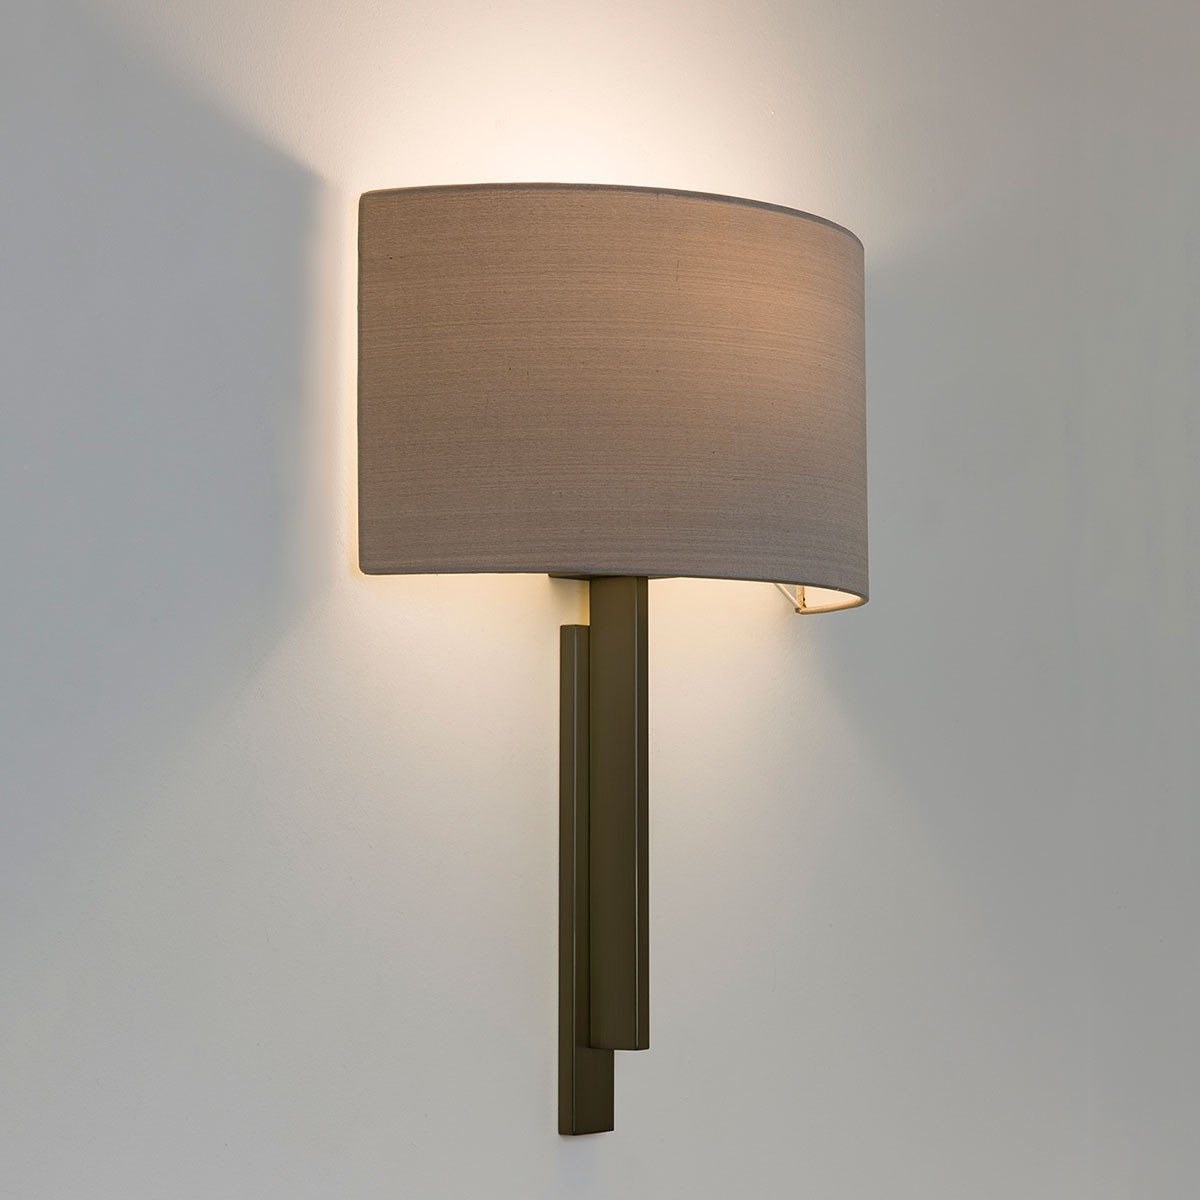 Astro Tate Bronze Wall Light At Uk Electrical Supplies